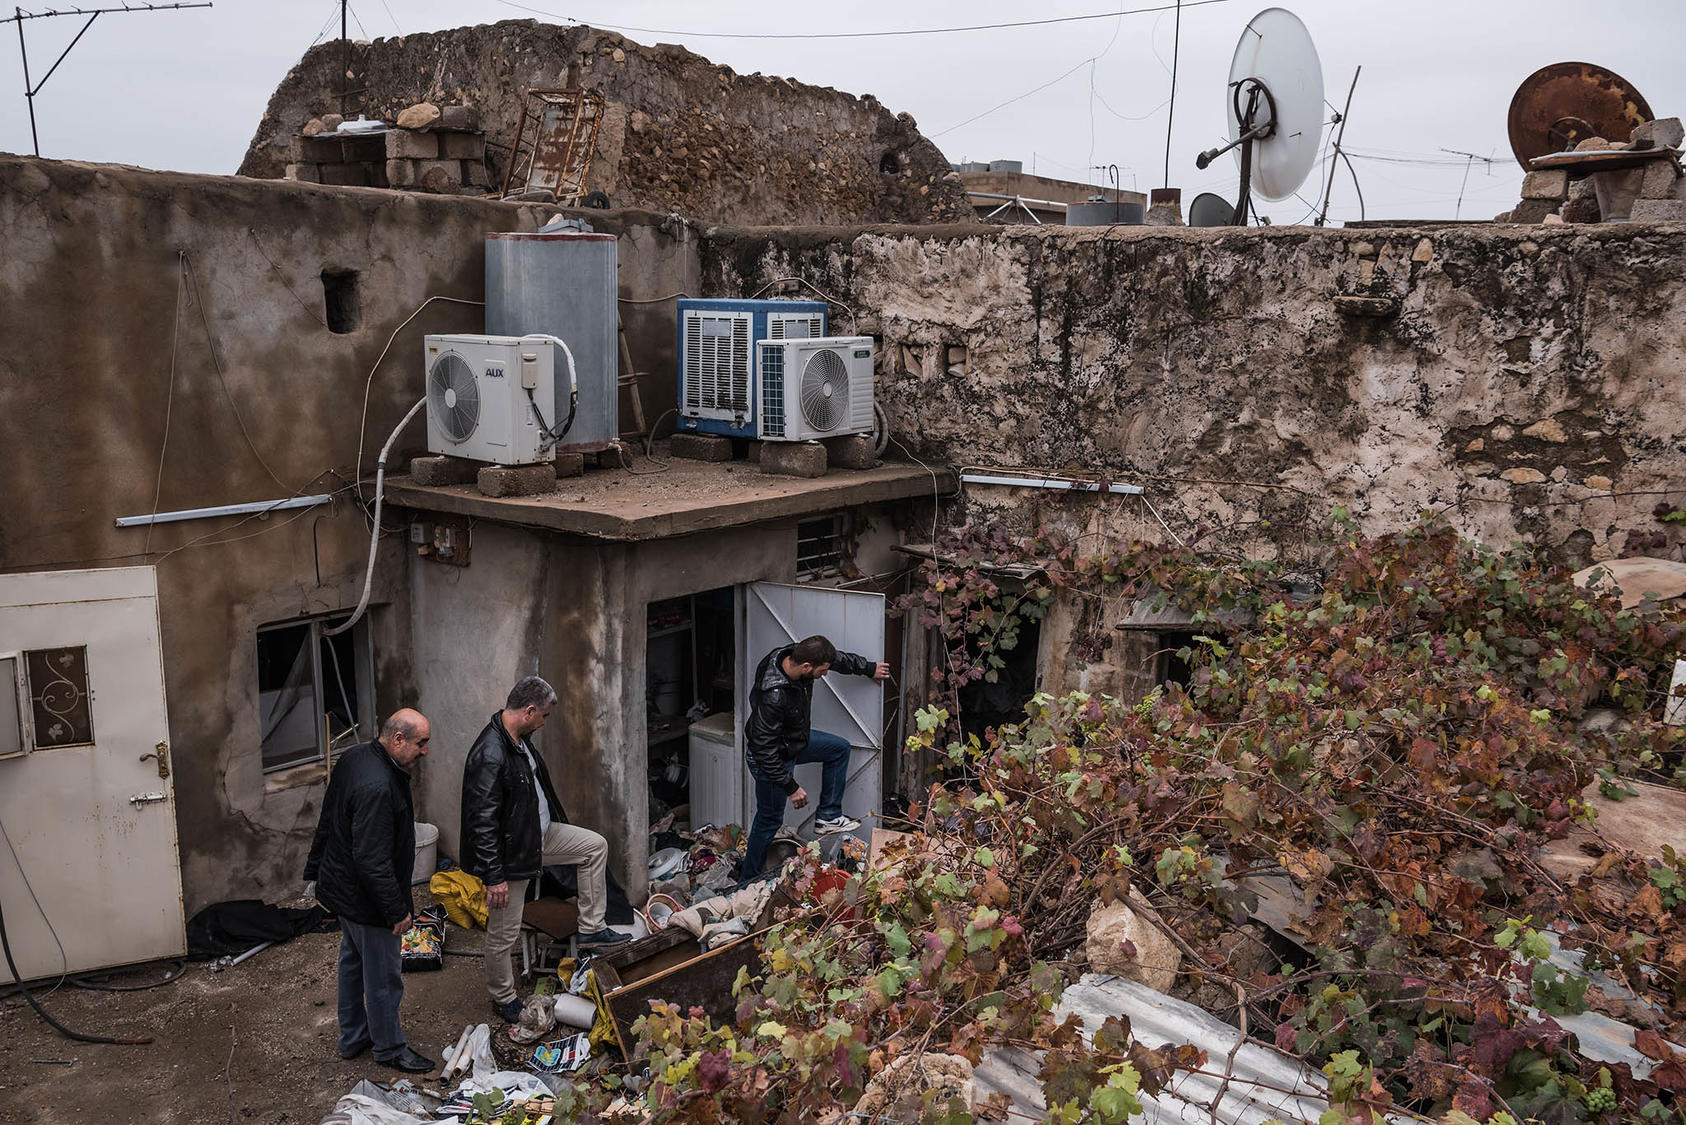 Men from the Al-Saka family check their house after they said they had not been there for two years during Islamic State occupation, in Bartella, a predominantly Christian town in Iraq, Dec. 1, 2016. (Sergey Ponomarev/The New York Times)